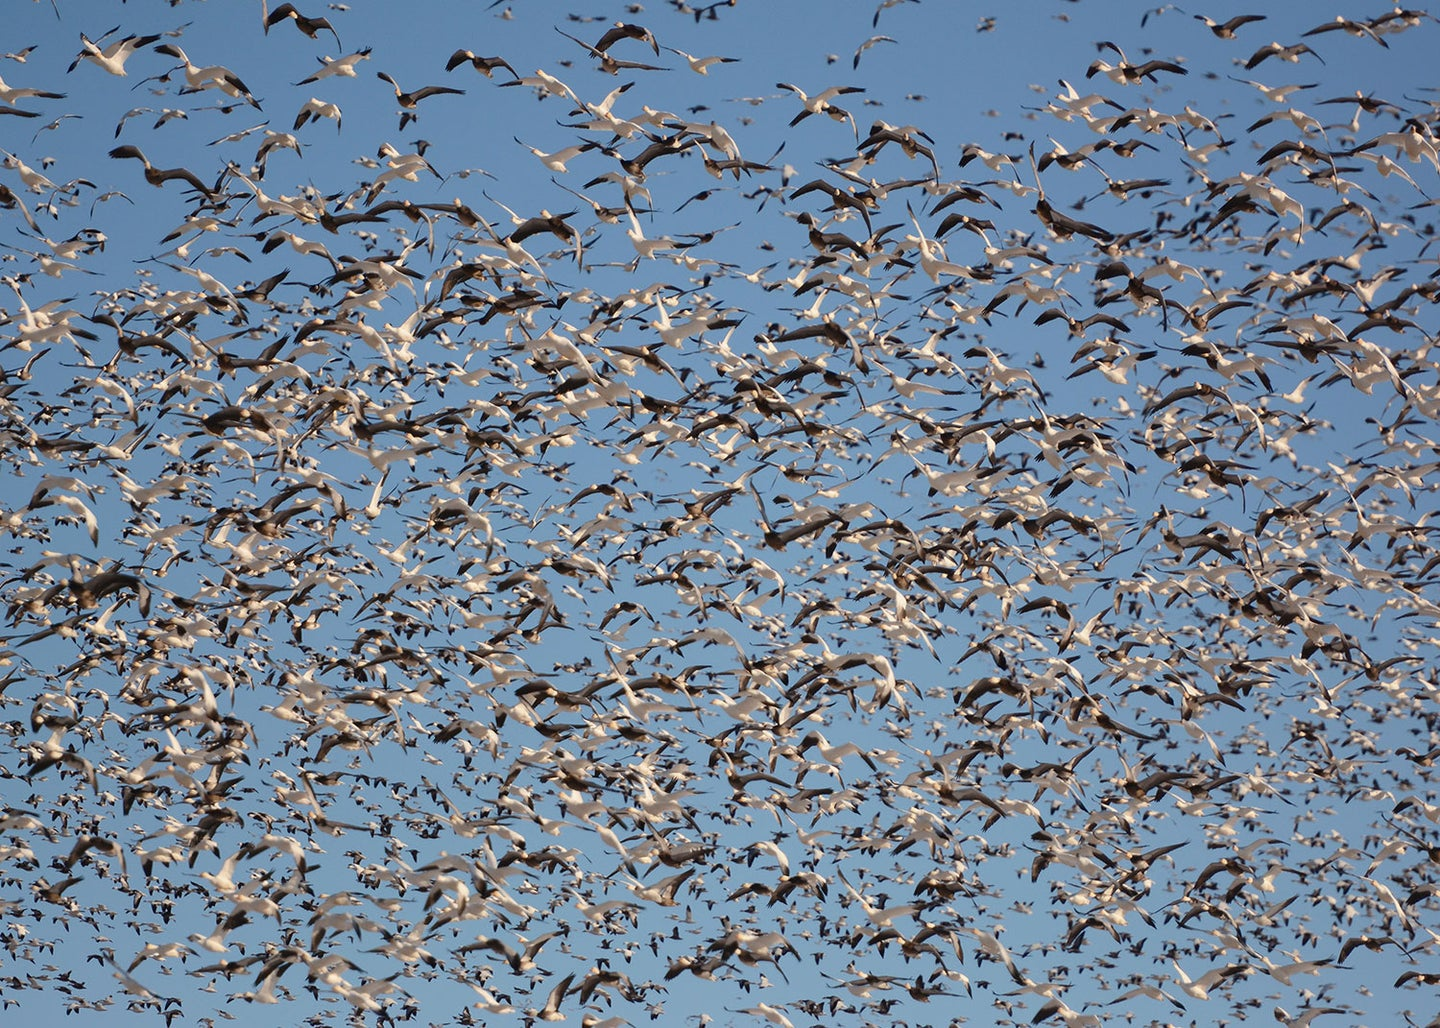 A large flock of snow geese.